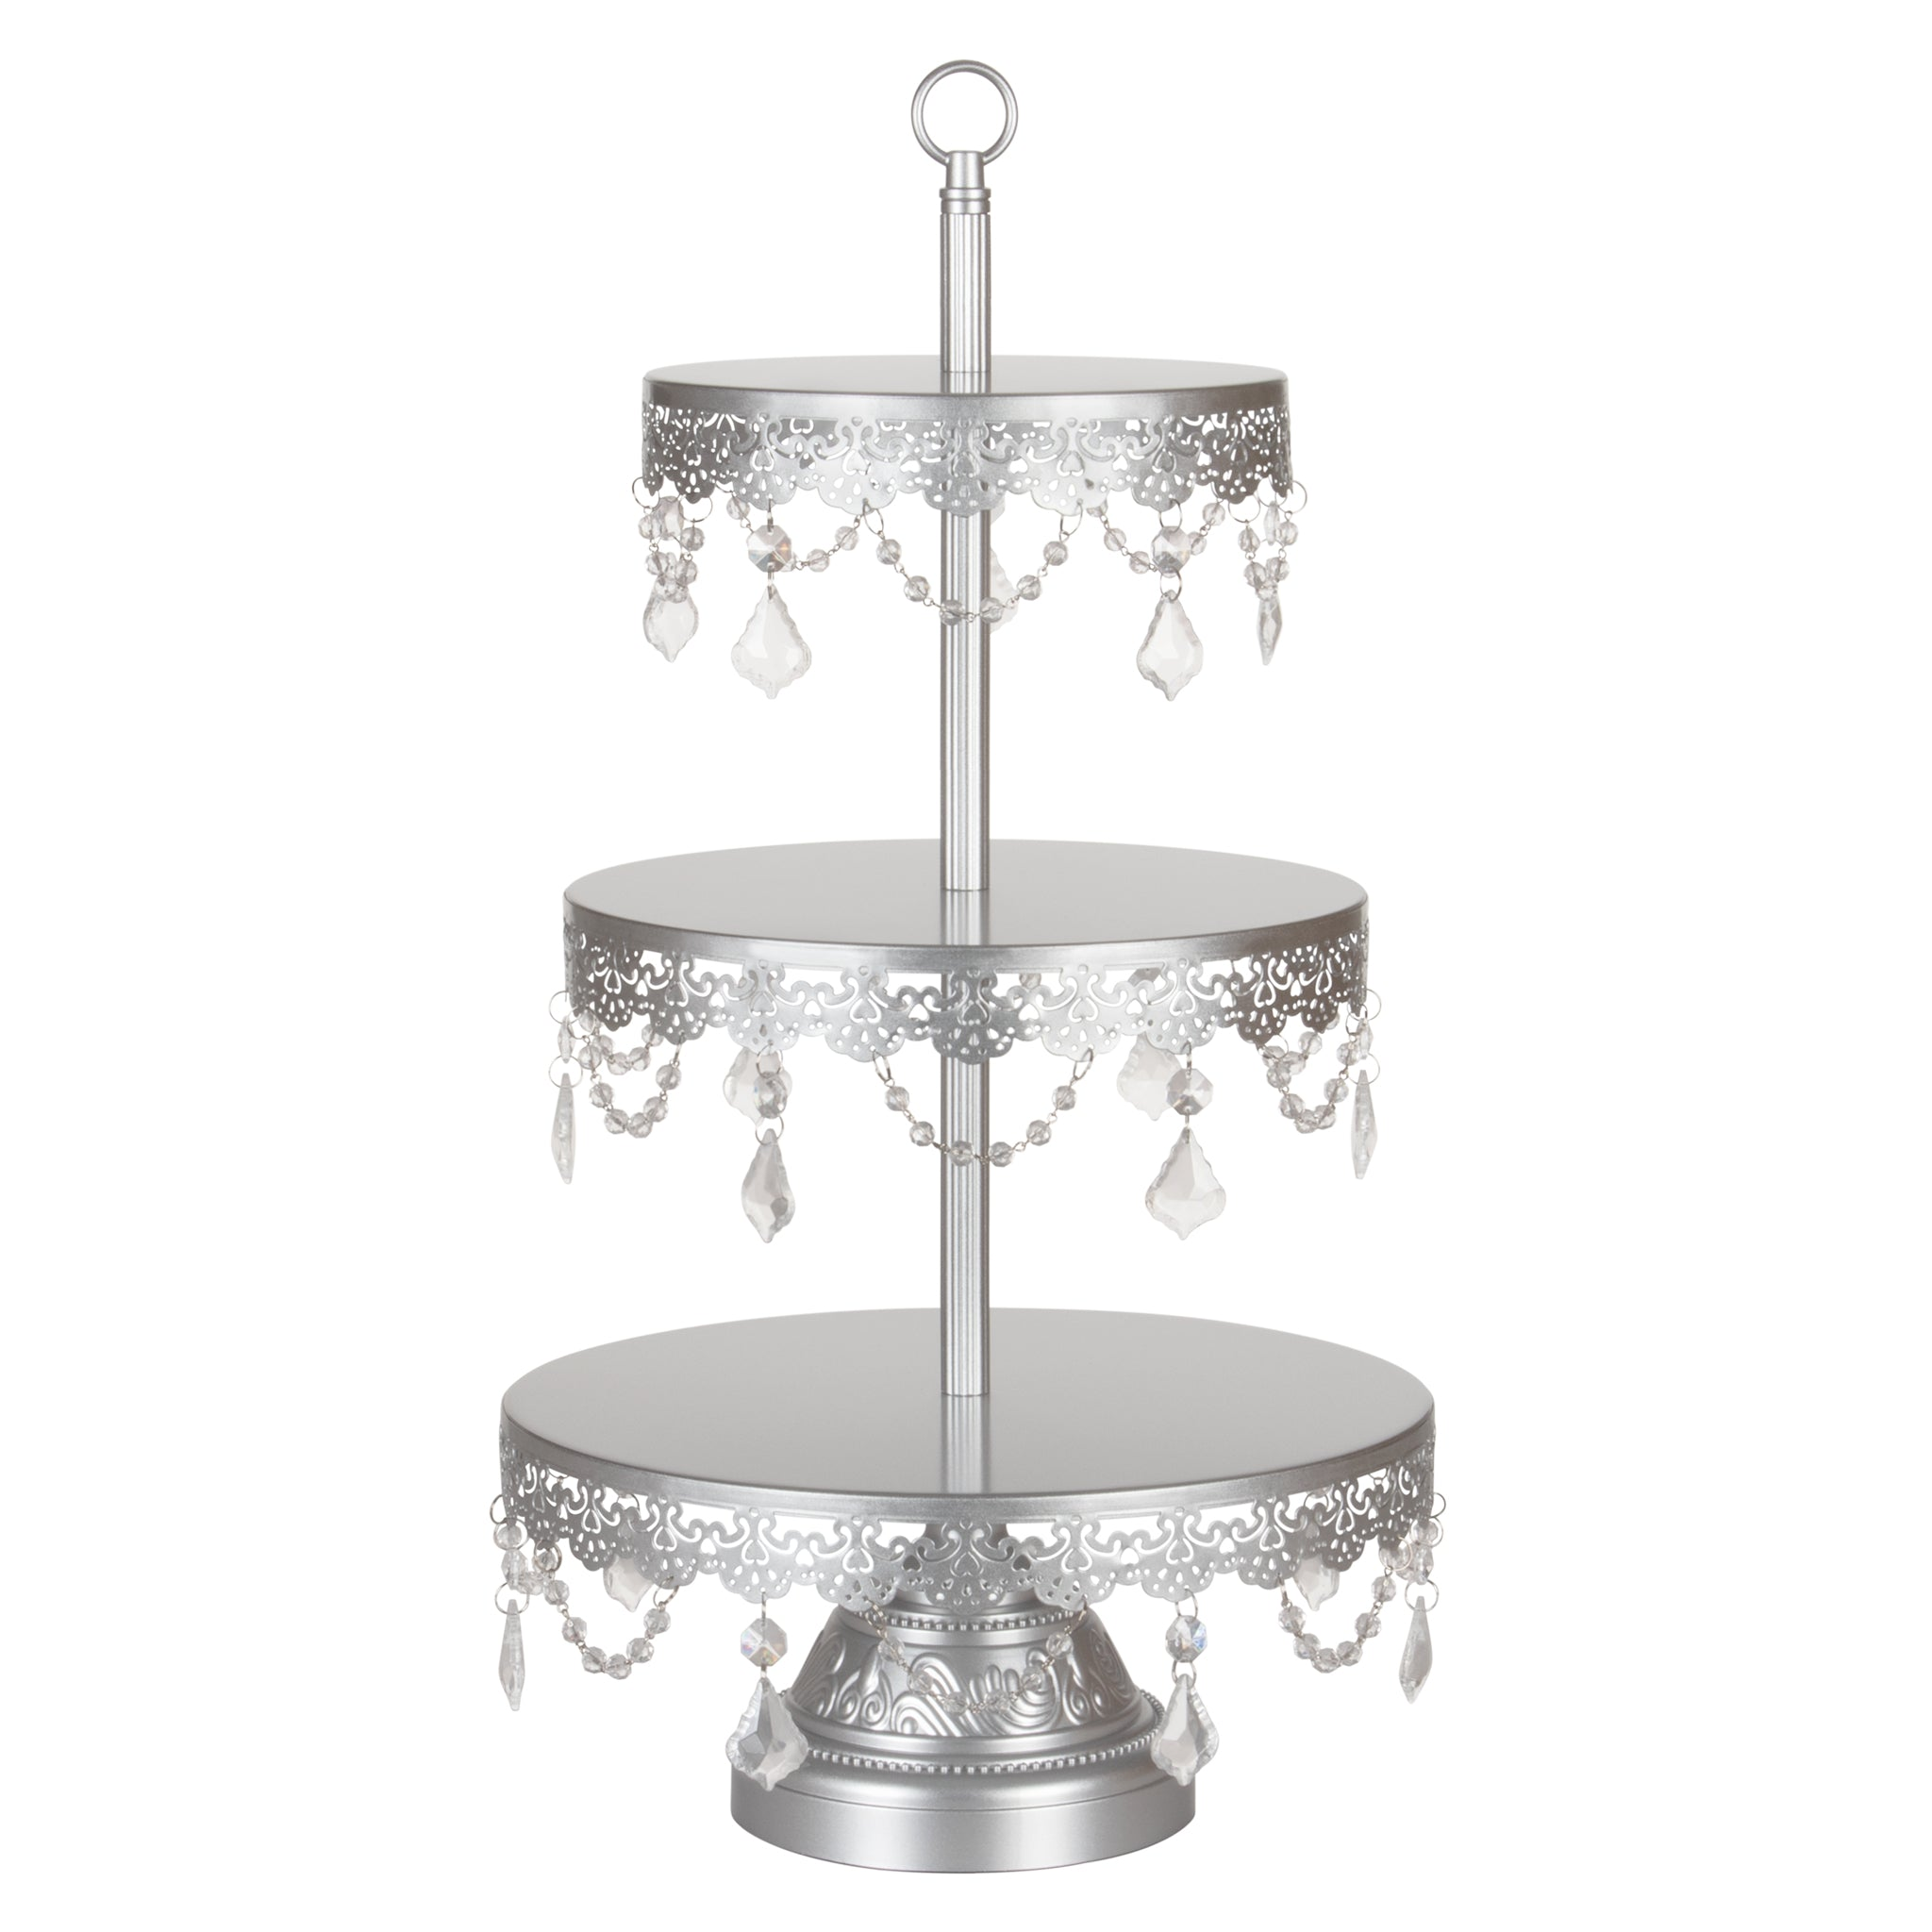 Amalfi Decor 3-Tier Crystal-Draped Dessert Cupcake Stand (Silver) | Stainless Steel Frame